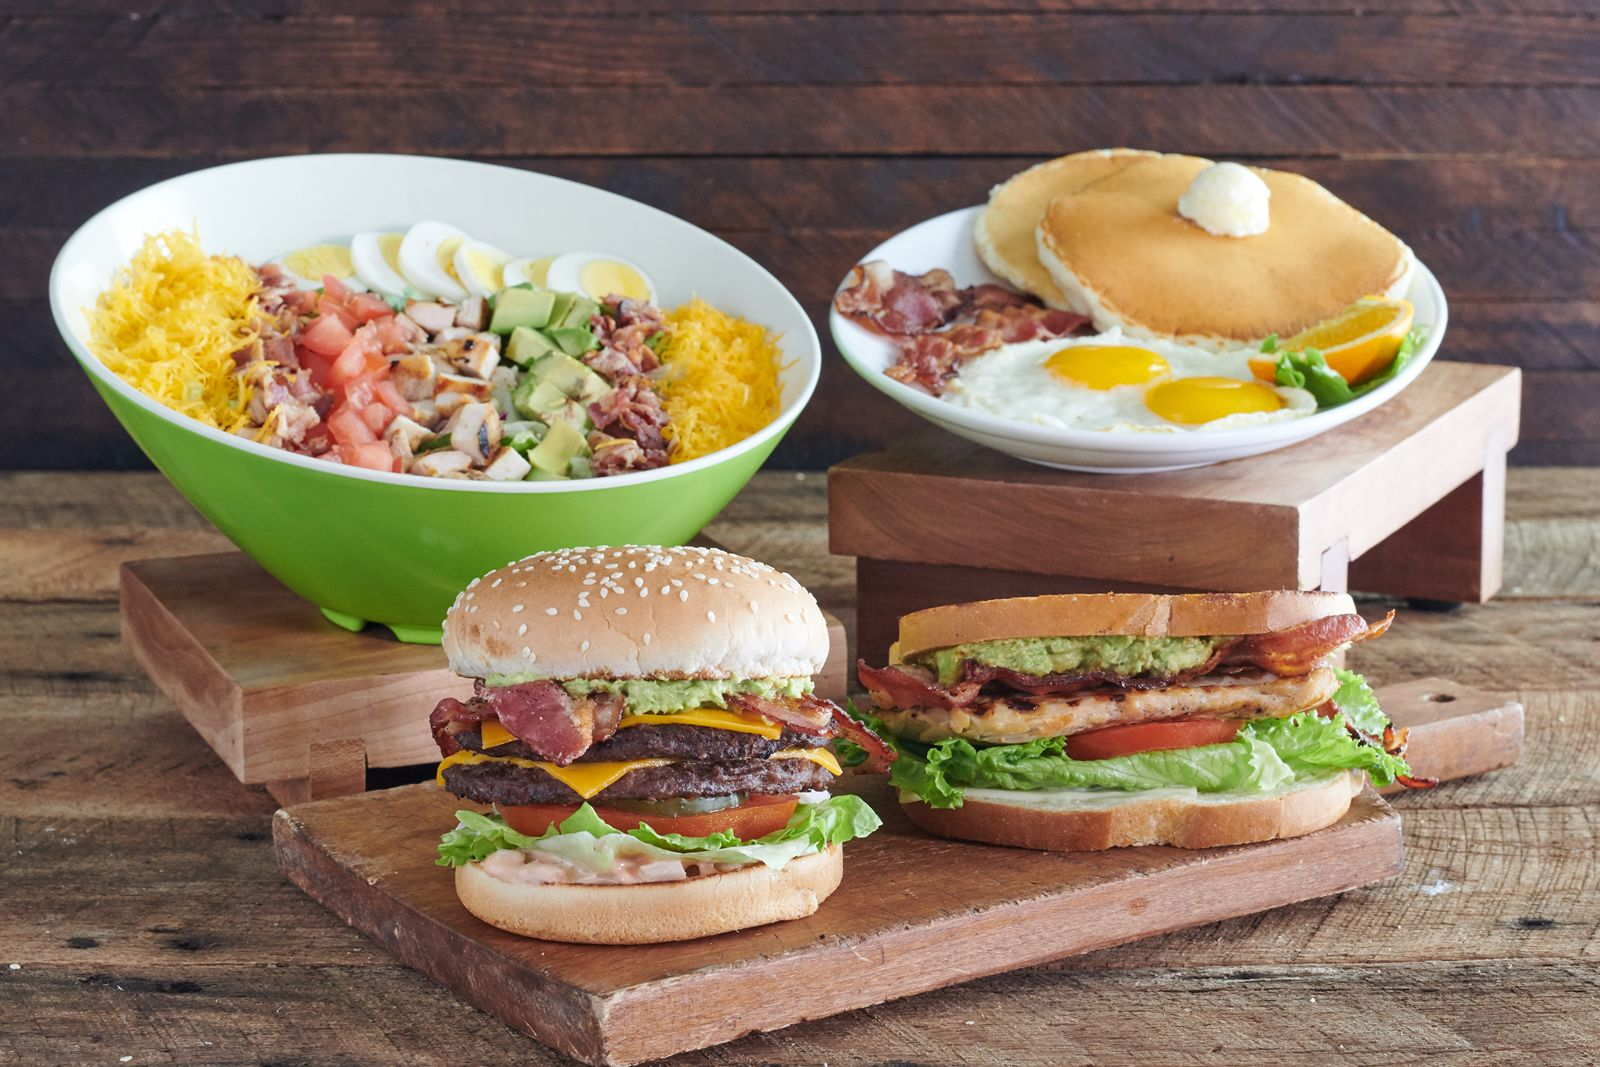 Farmer Boys is celebrating the Grand Opening of its new location in Huntington Beach, Calif. on Friday, Nov. 6 and Saturday, Nov. 7 at 6962 Edinger Avenue.